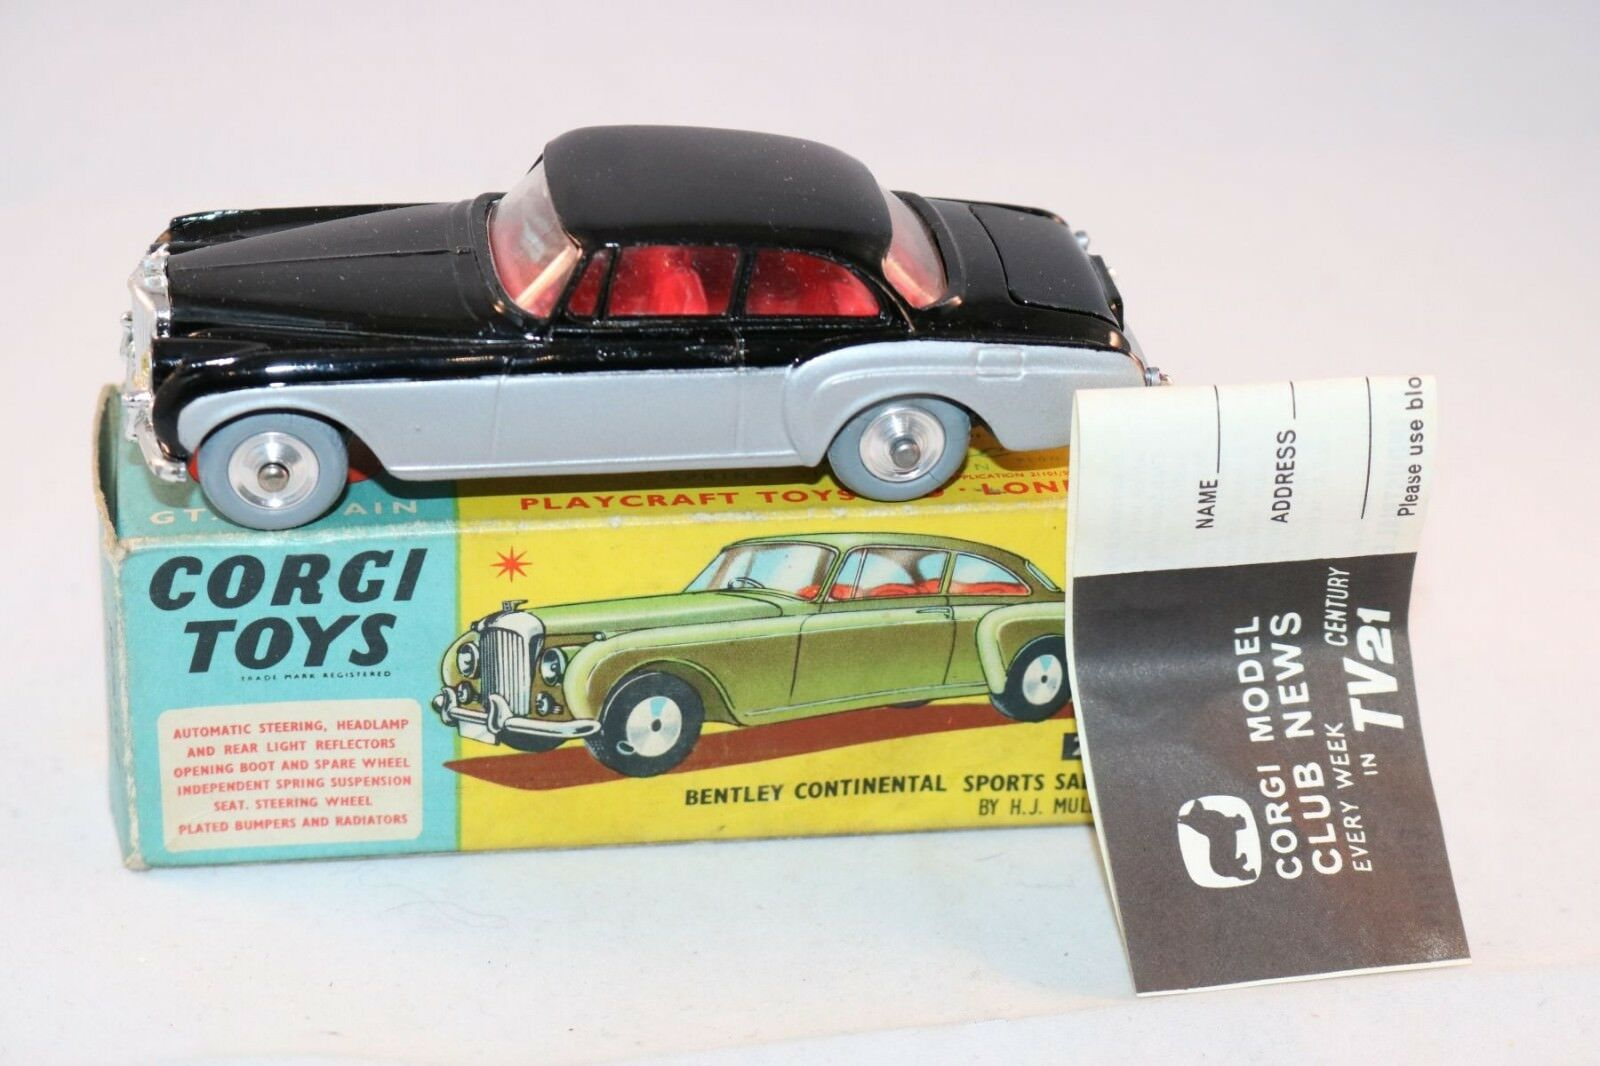 Corgi Toys 224 Bentley Continental Sports perfect mint in box & Leaflat SUPERB